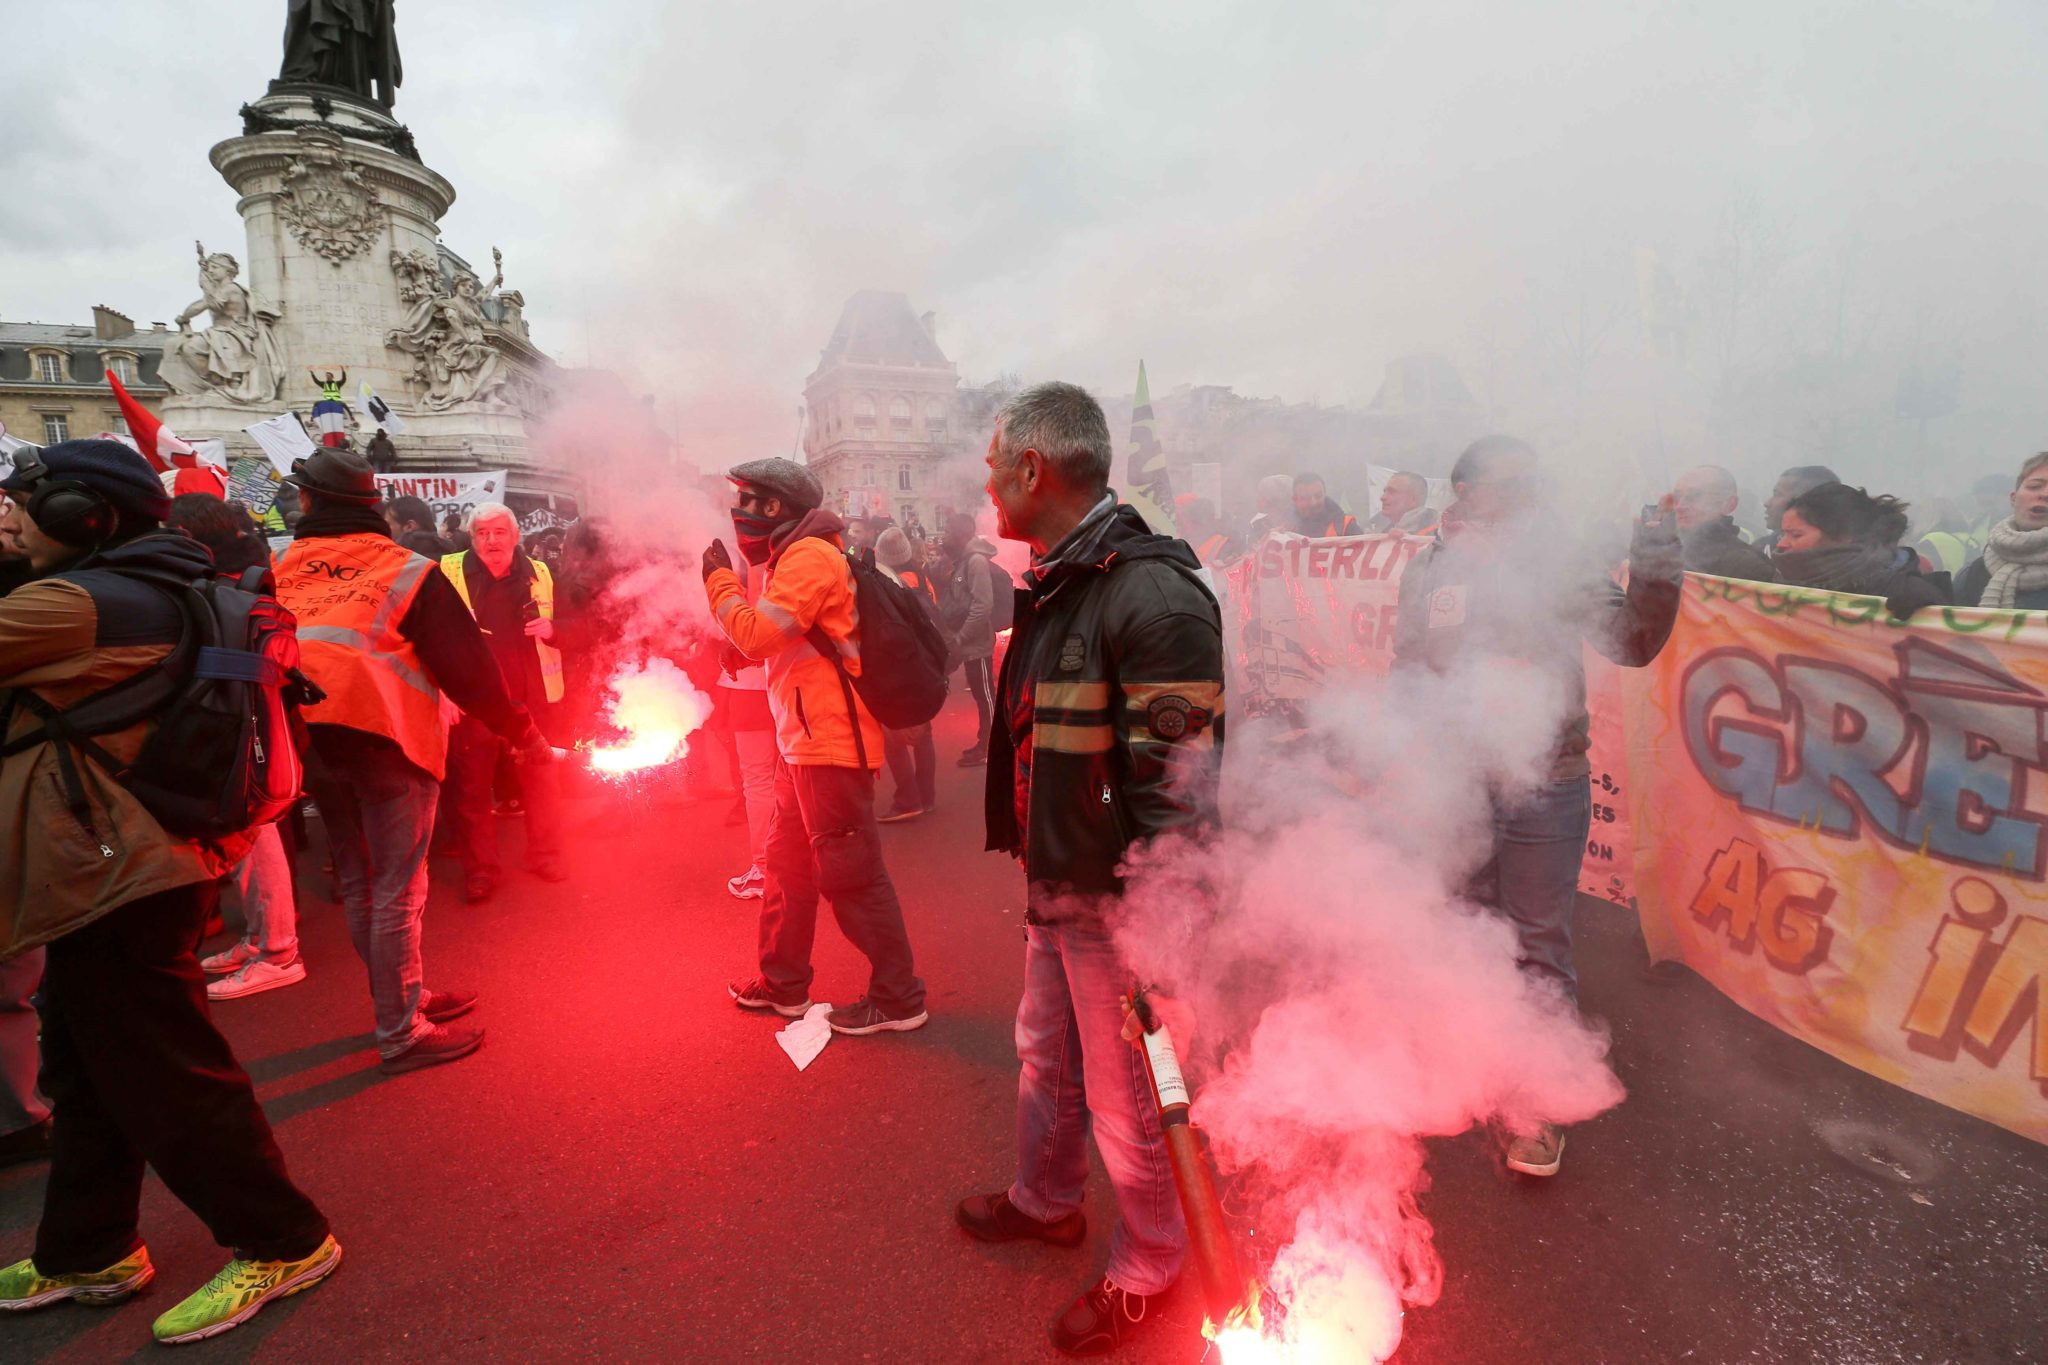 Striking railway workers holds red flares during a demonstration called by French national trade union General Confederation of Labour (CGT) against the pension reform on January 4, 2020, on the Place de la Republique in Paris, on January 4, 2020. After 30